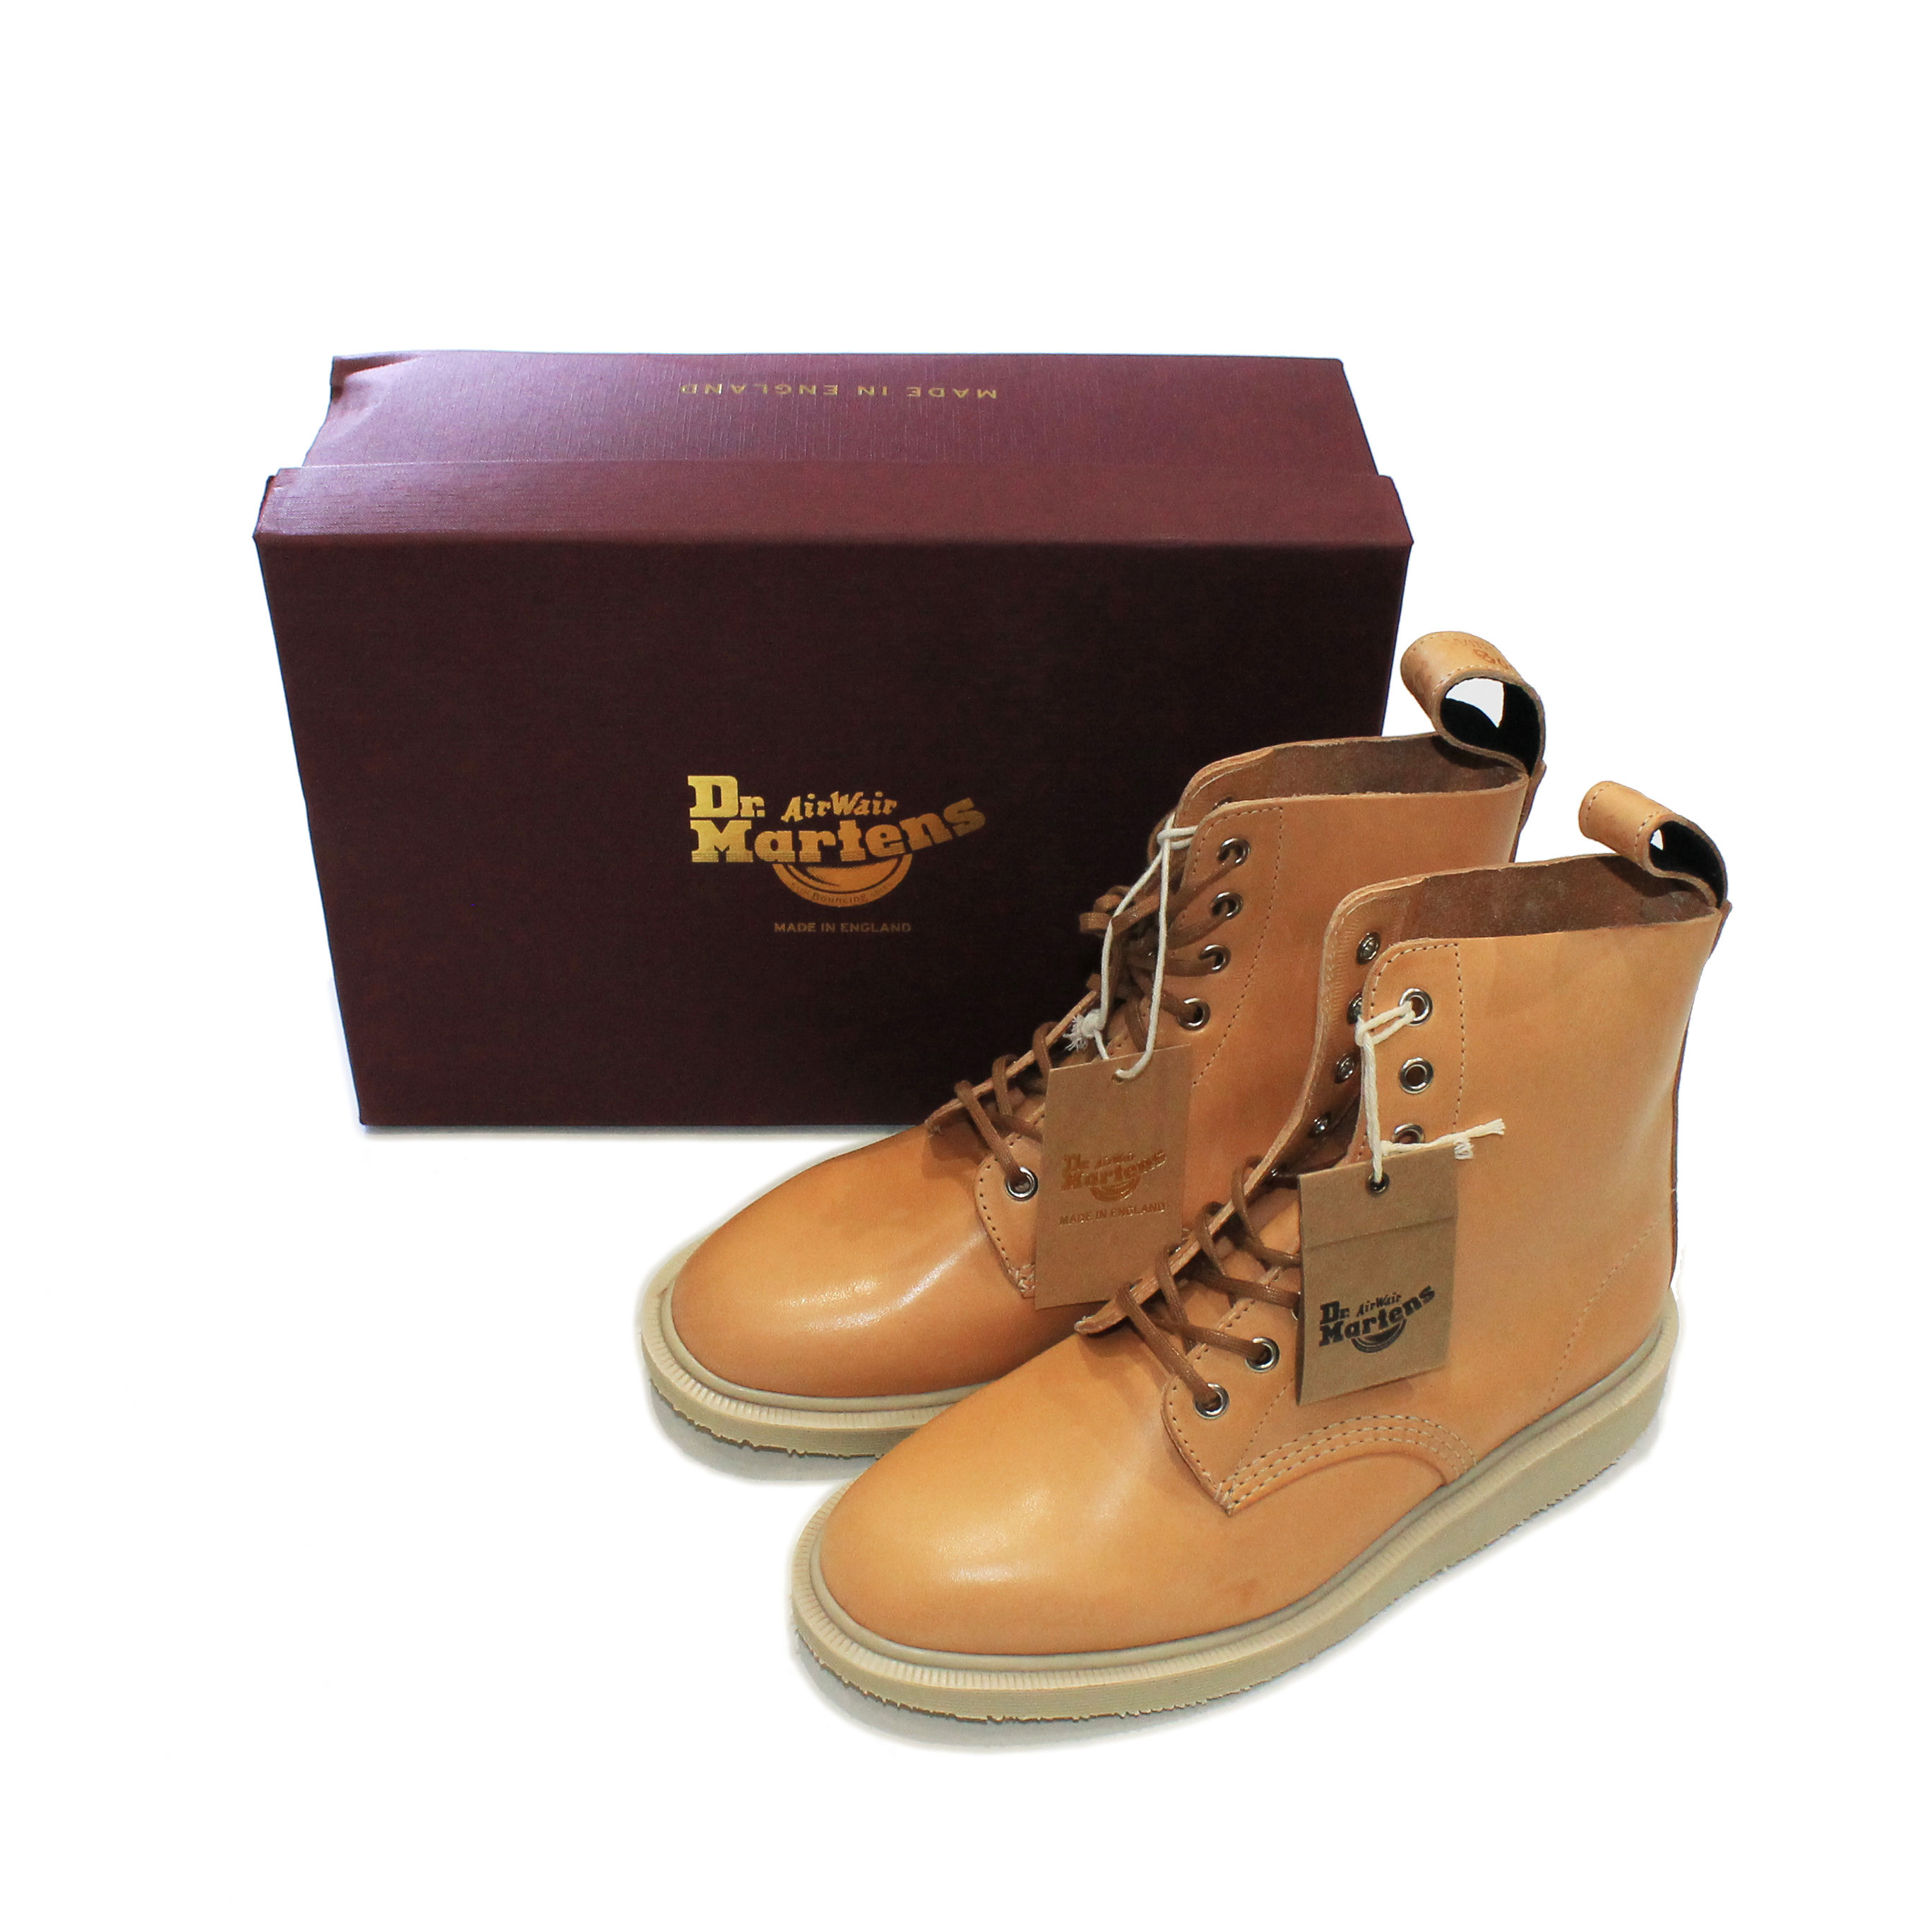 Dr.Martins Butteroscotch Boots Box  UK6 from family style